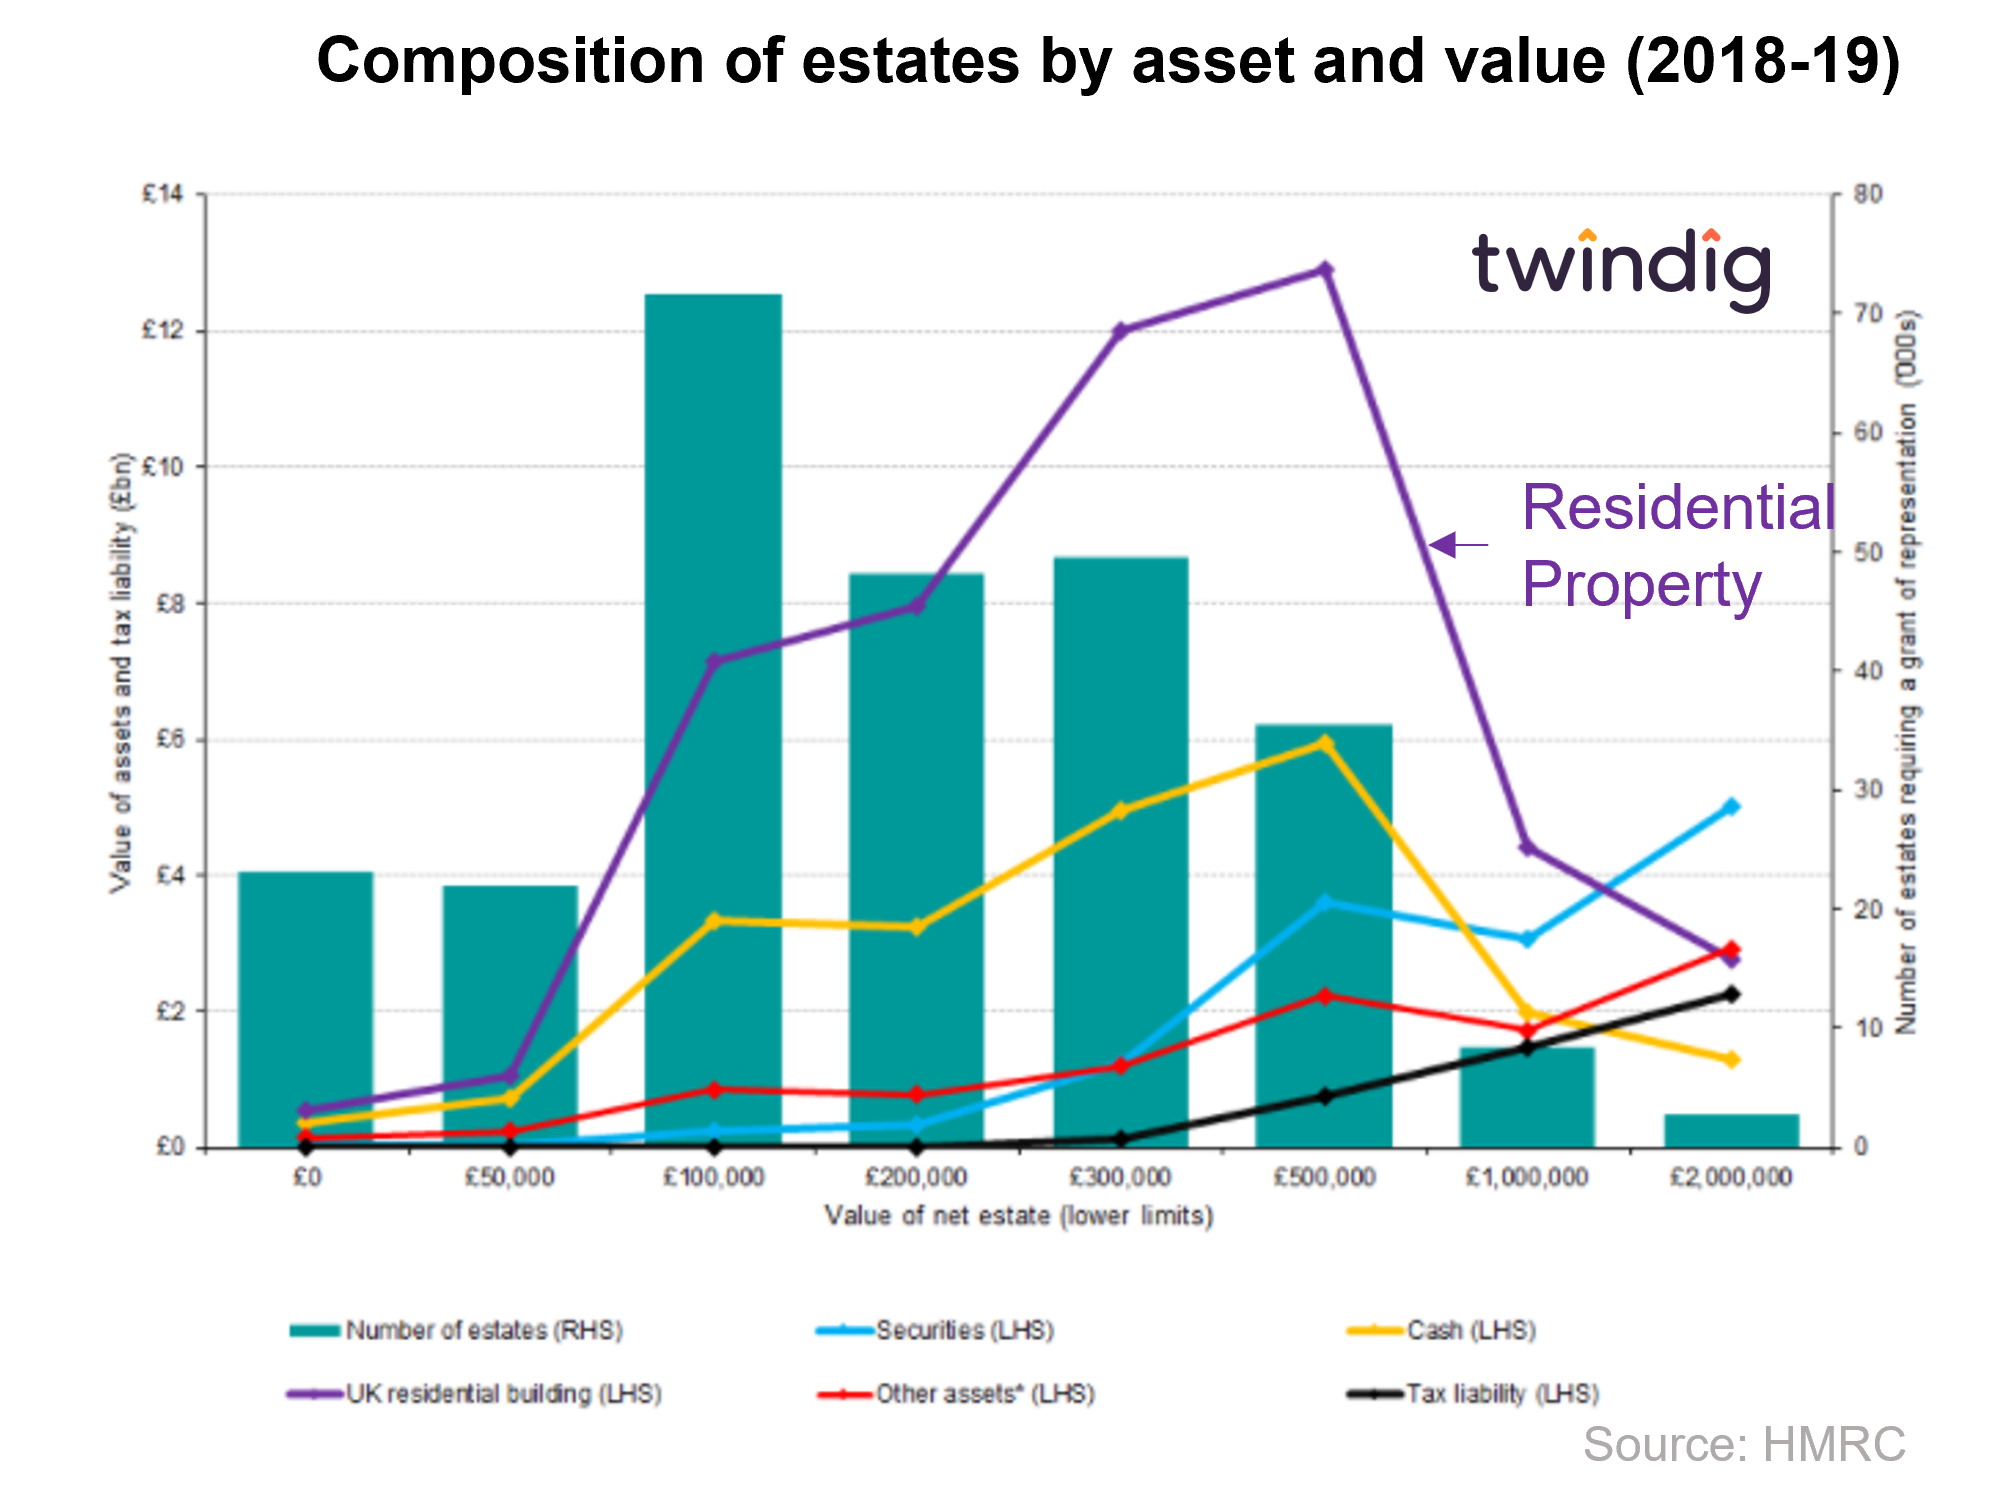 inheritance tax chart graph showing IHT by asset class and value twindig anthony codling